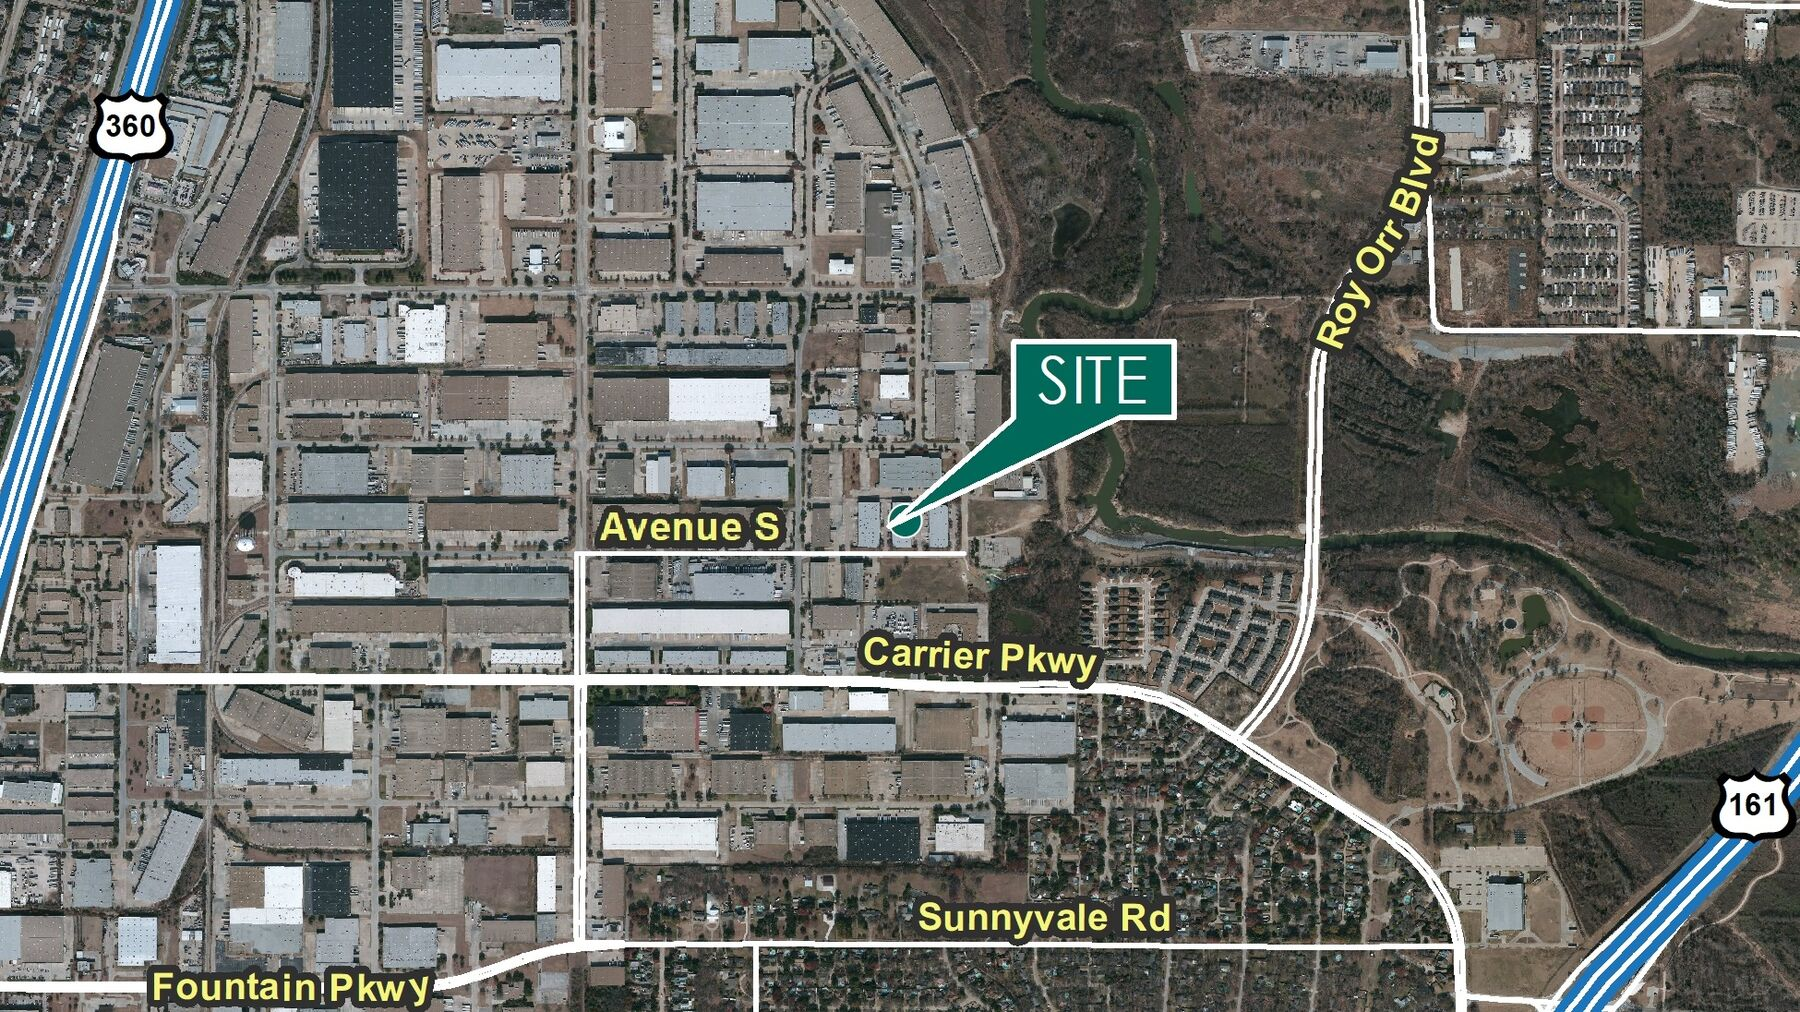 DPM-Prologis-Great-Southwest-73-DAL01773-1515-Avenue-S_AerialMap.jpg